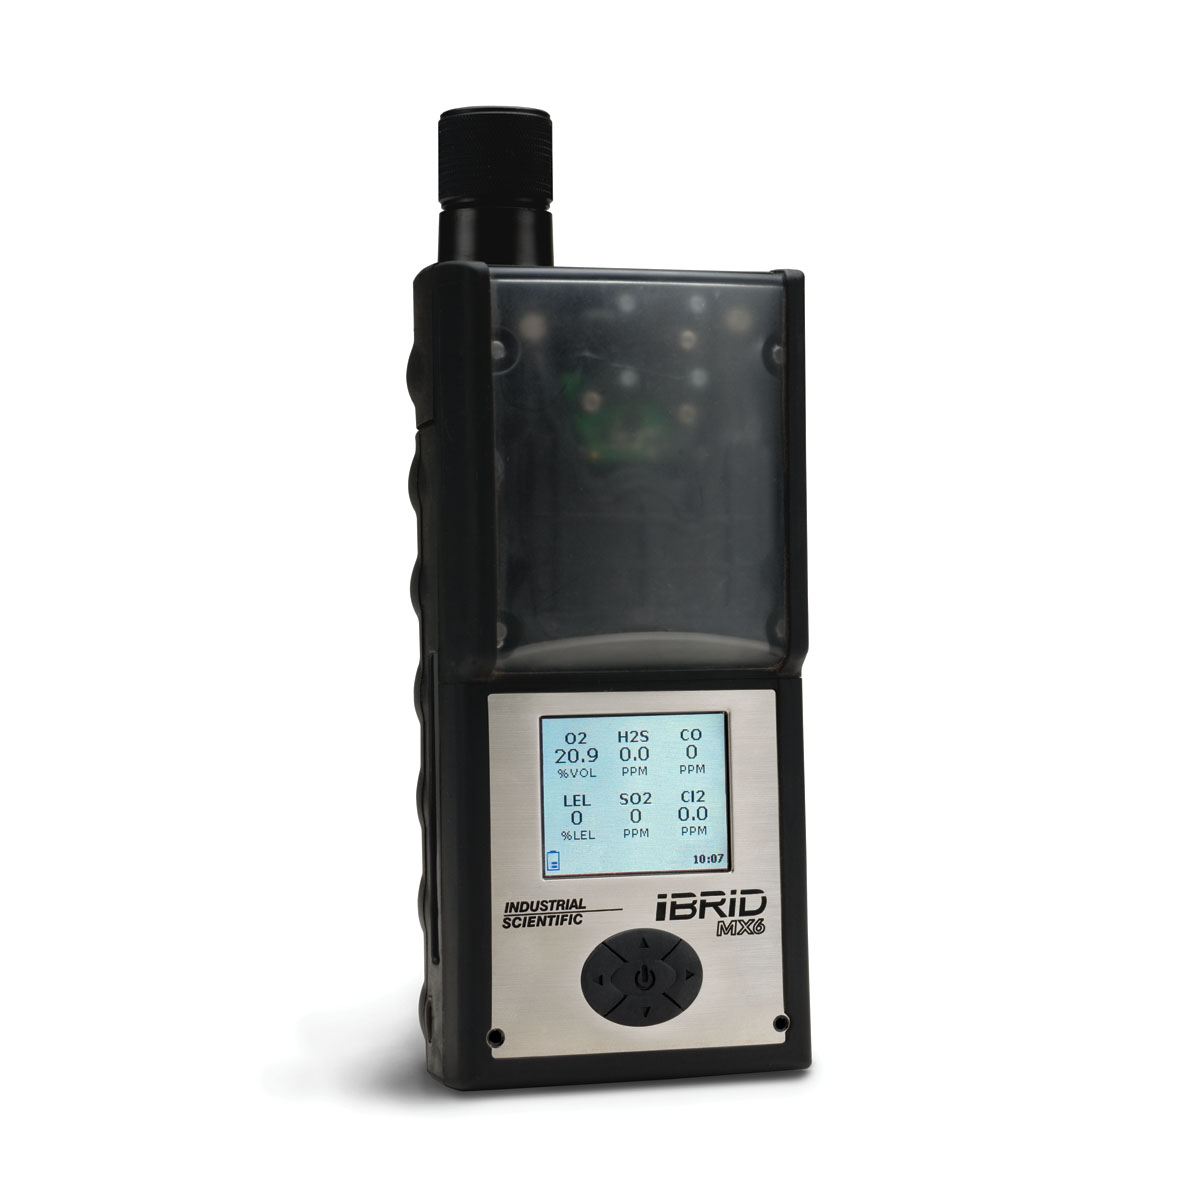 Industrial Scientific MX6 iBrid Gas Detector Series